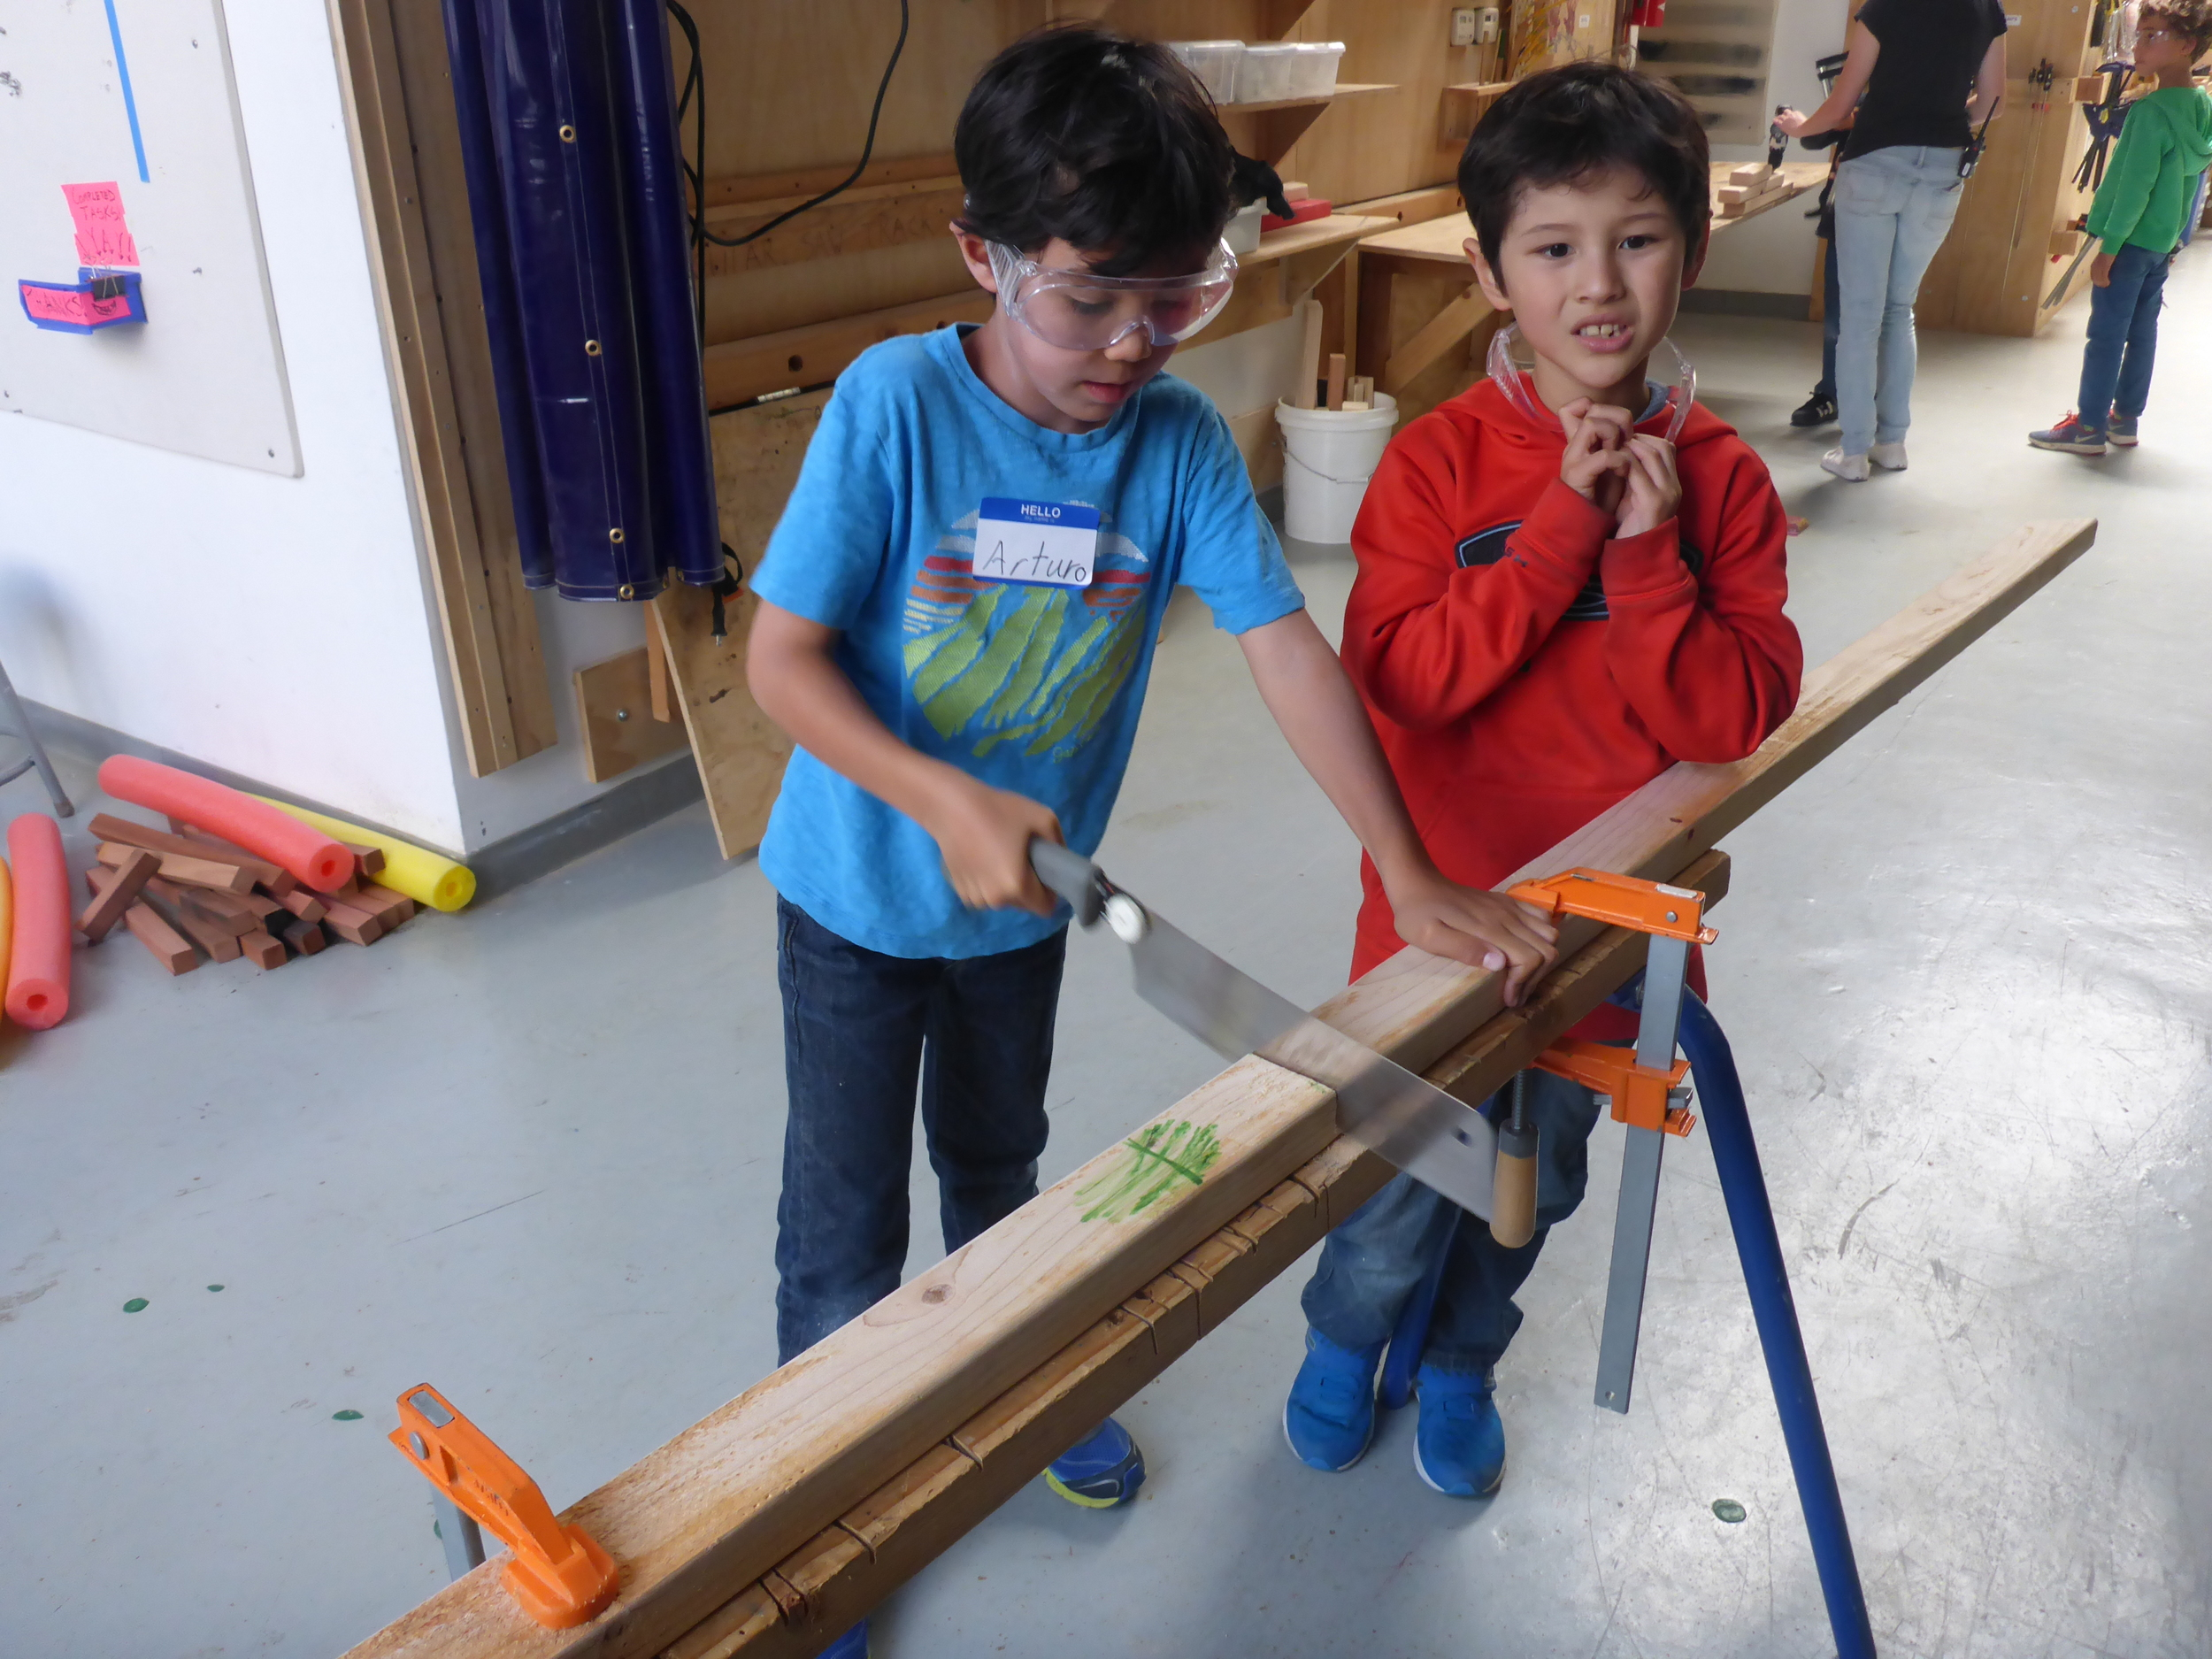 Jett and Arturo are on a quest to test out every saw in the shop to see how they each cut.